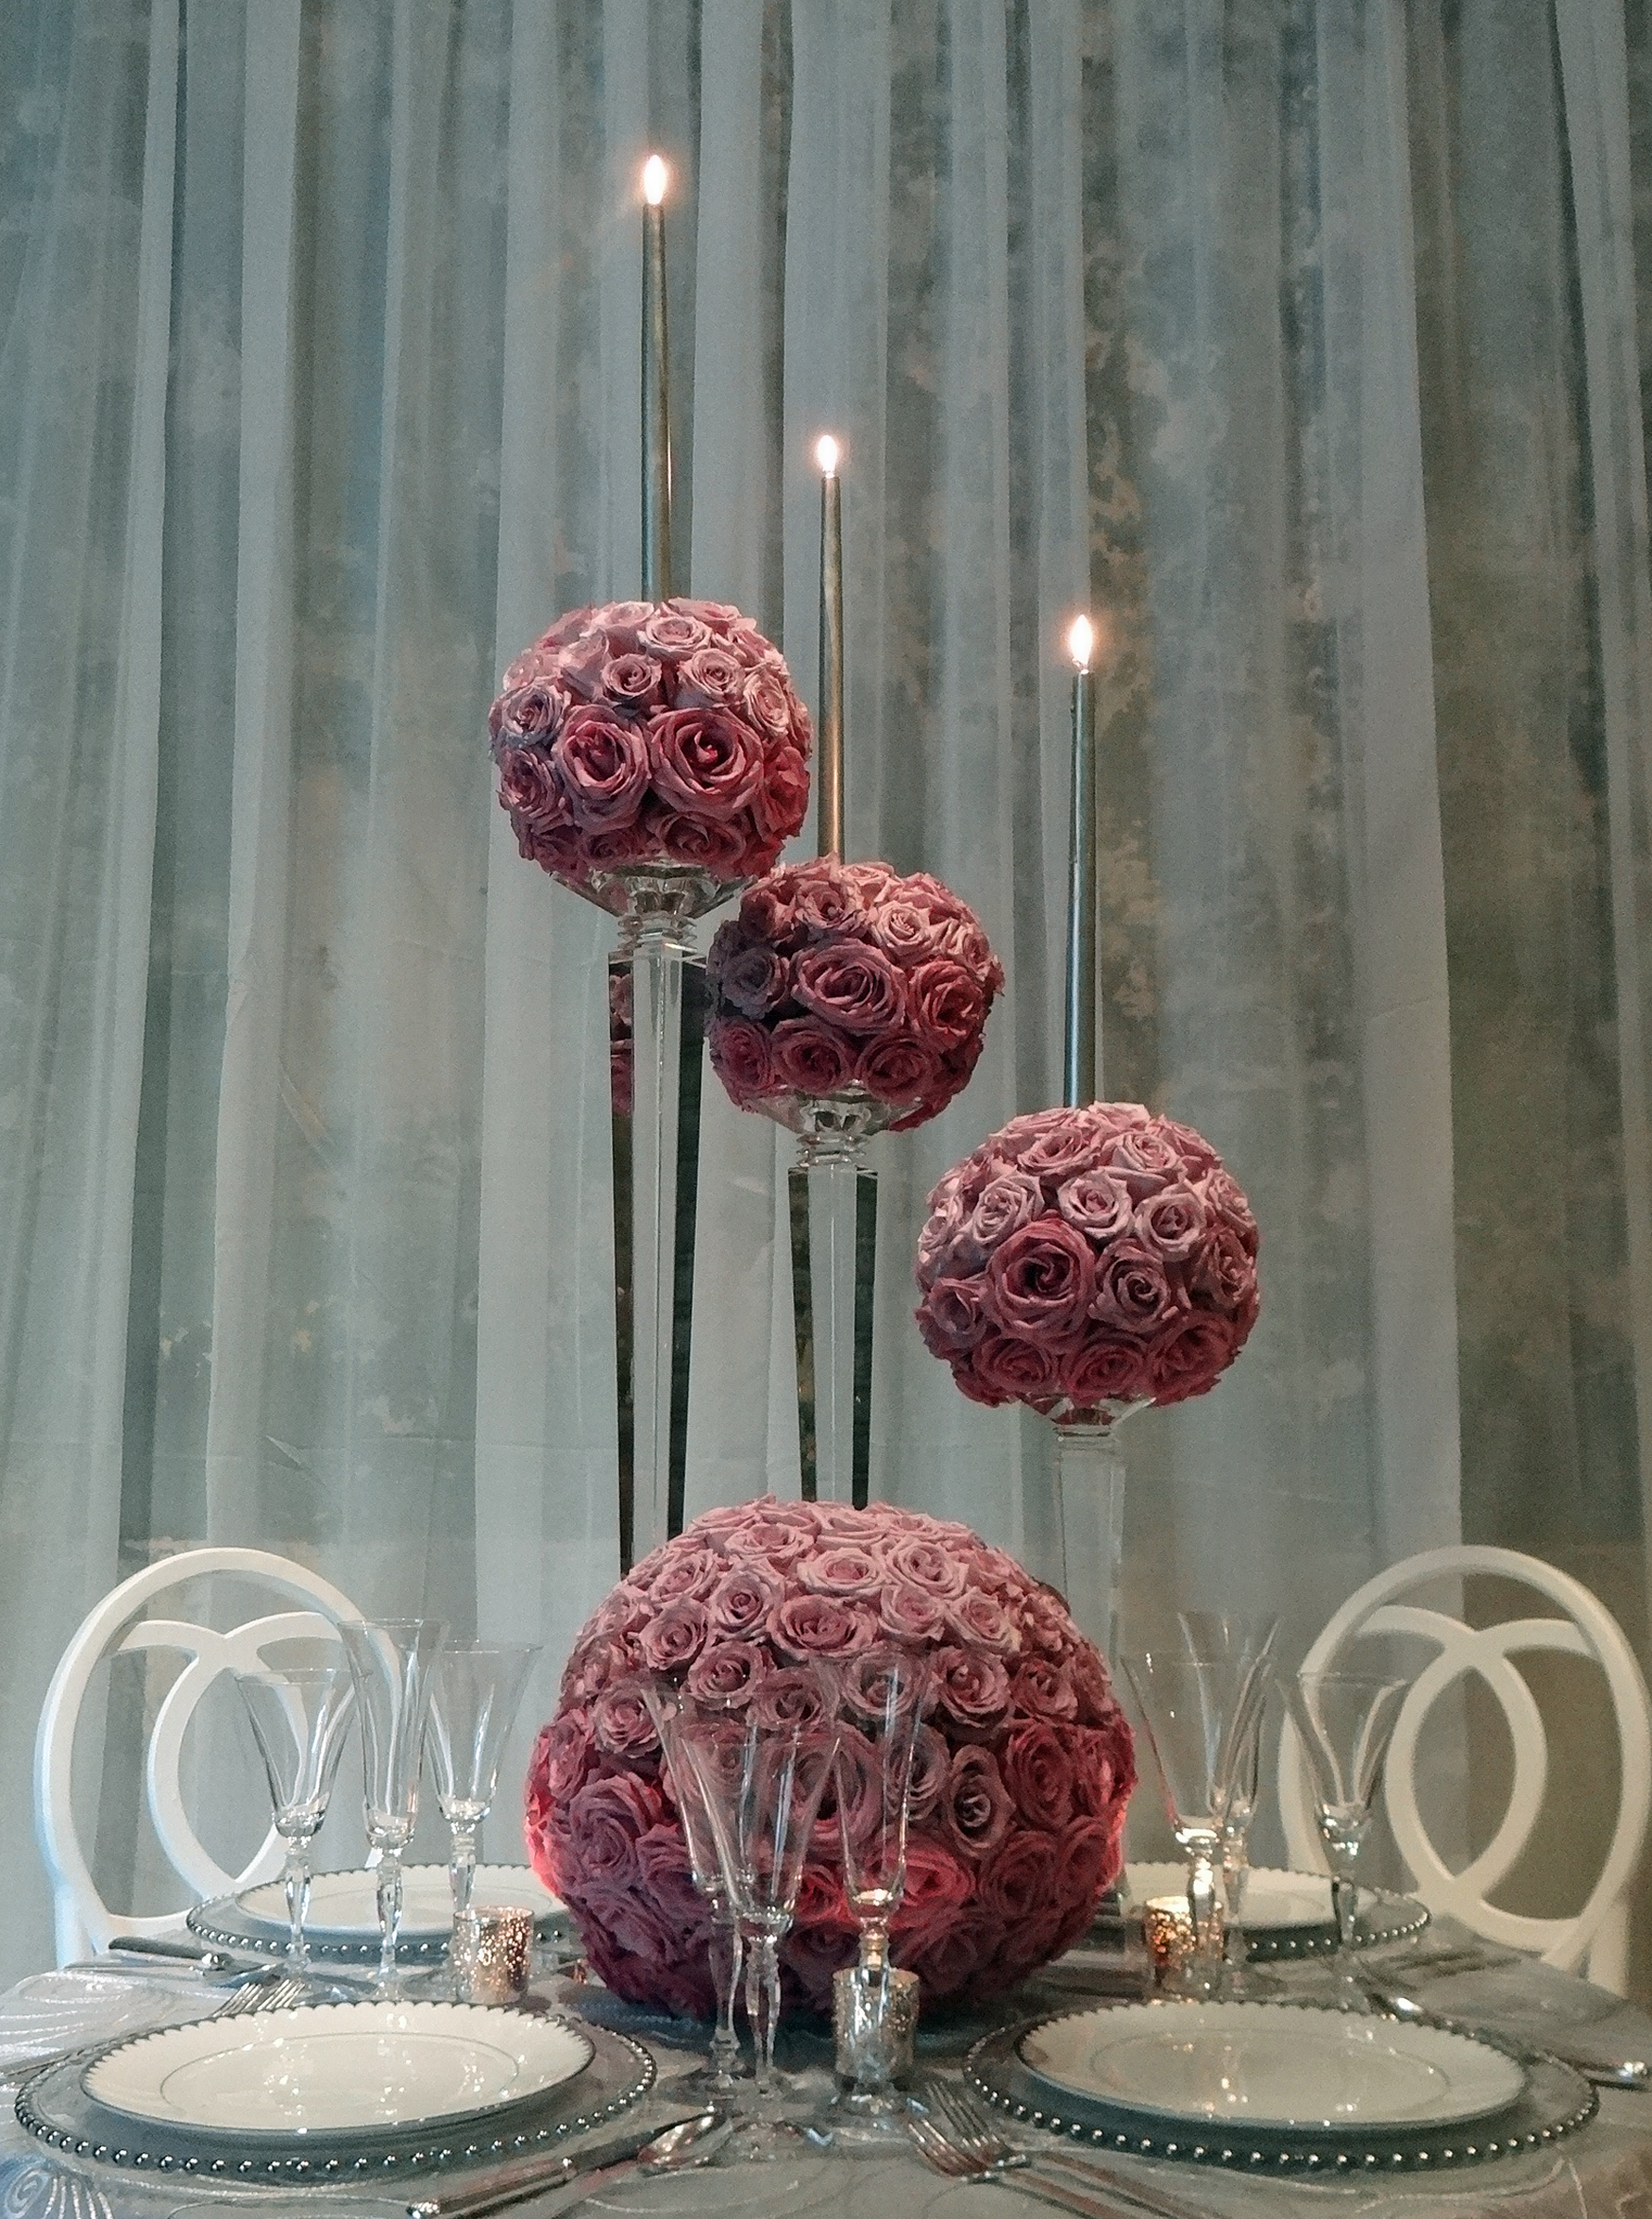 LAVENDER-OMBRE-ROSE-GLOBES-WITH-CRYSTAL-CANDLESTICK resized.jpg